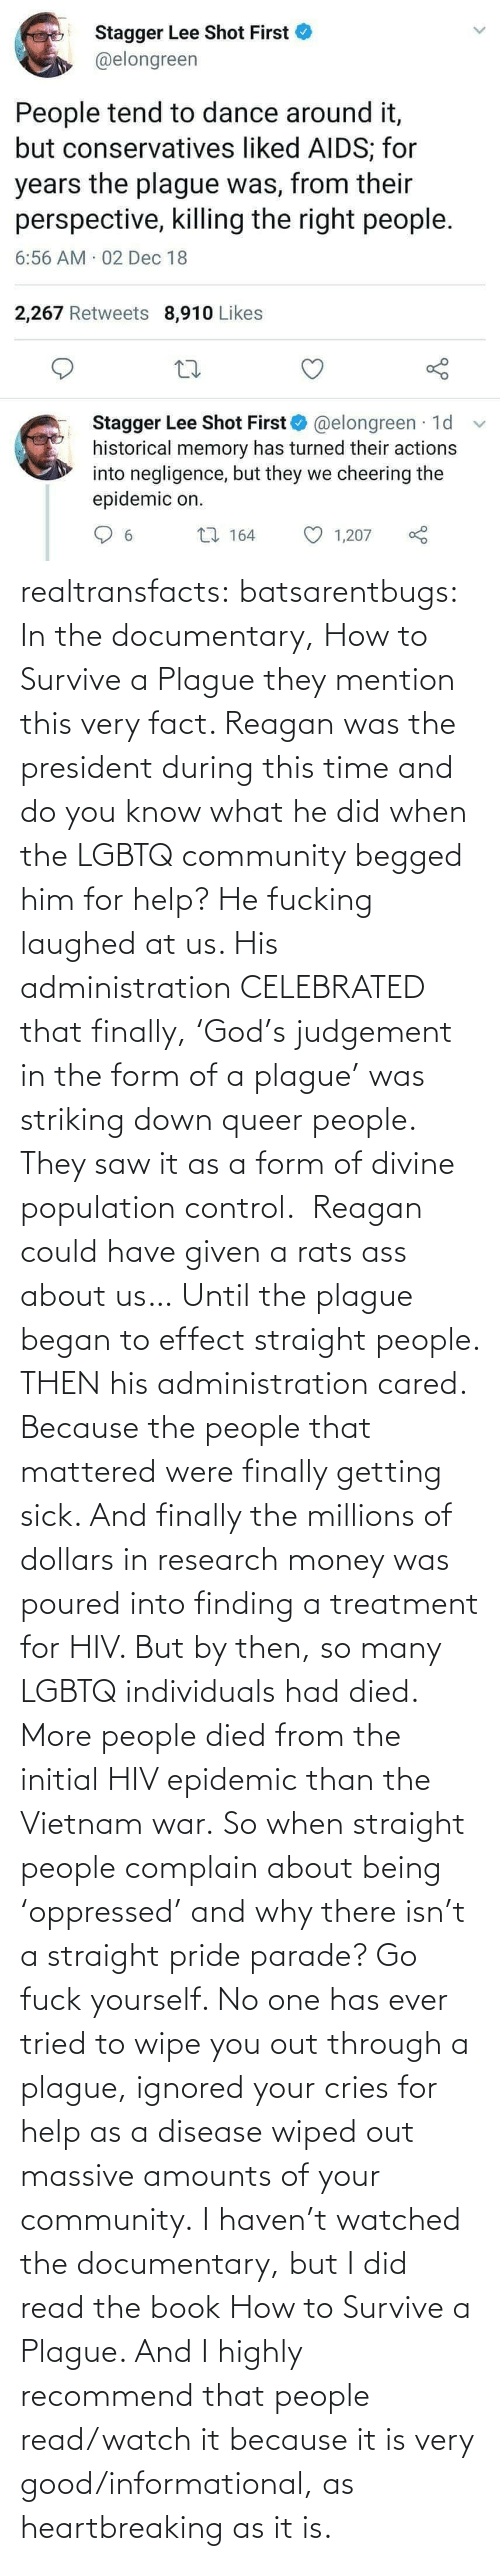 But I: Stagger Lee Shot First  @elongreen  People tend to dance around it,  but conservatives liked AIDS; for  years the plague was, from their  perspective, killing the right people.  6:56 AM 02 Dec 18  2,267 Retweets 8,910 Likes  Stagger Lee Shot First O @elongreen · 1d  historical memory has turned their actions  into negligence, but they we cheering the  epidemic on.  27 164  1,207  6. realtransfacts:  batsarentbugs:  In the documentary, How to Survive a Plague they mention this very fact. Reagan was the president during this time and do you know what he did when the LGBTQ community begged him for help? He fucking laughed at us. His administration CELEBRATED that finally, 'God's judgement in the form of a plague' was striking down queer people.  They saw it as a form of divine population control.  Reagan could have given a rats ass about us… Until the plague began to effect straight people. THEN his administration cared. Because the people that mattered were finally getting sick. And finally the millions of dollars in research money was poured into finding a treatment for HIV. But by then, so many LGBTQ individuals had died.  More people died from the initial HIV epidemic than the Vietnam war. So when straight people complain about being 'oppressed' and why there isn't a straight pride parade? Go fuck yourself. No one has ever tried to wipe you out through a plague, ignored your cries for help as a disease wiped out massive amounts of your community.  I haven't watched the documentary, but I did read the book  How to Survive a Plague. And I highly recommend that people read/watch it because it is very good/informational, as heartbreaking as it is.